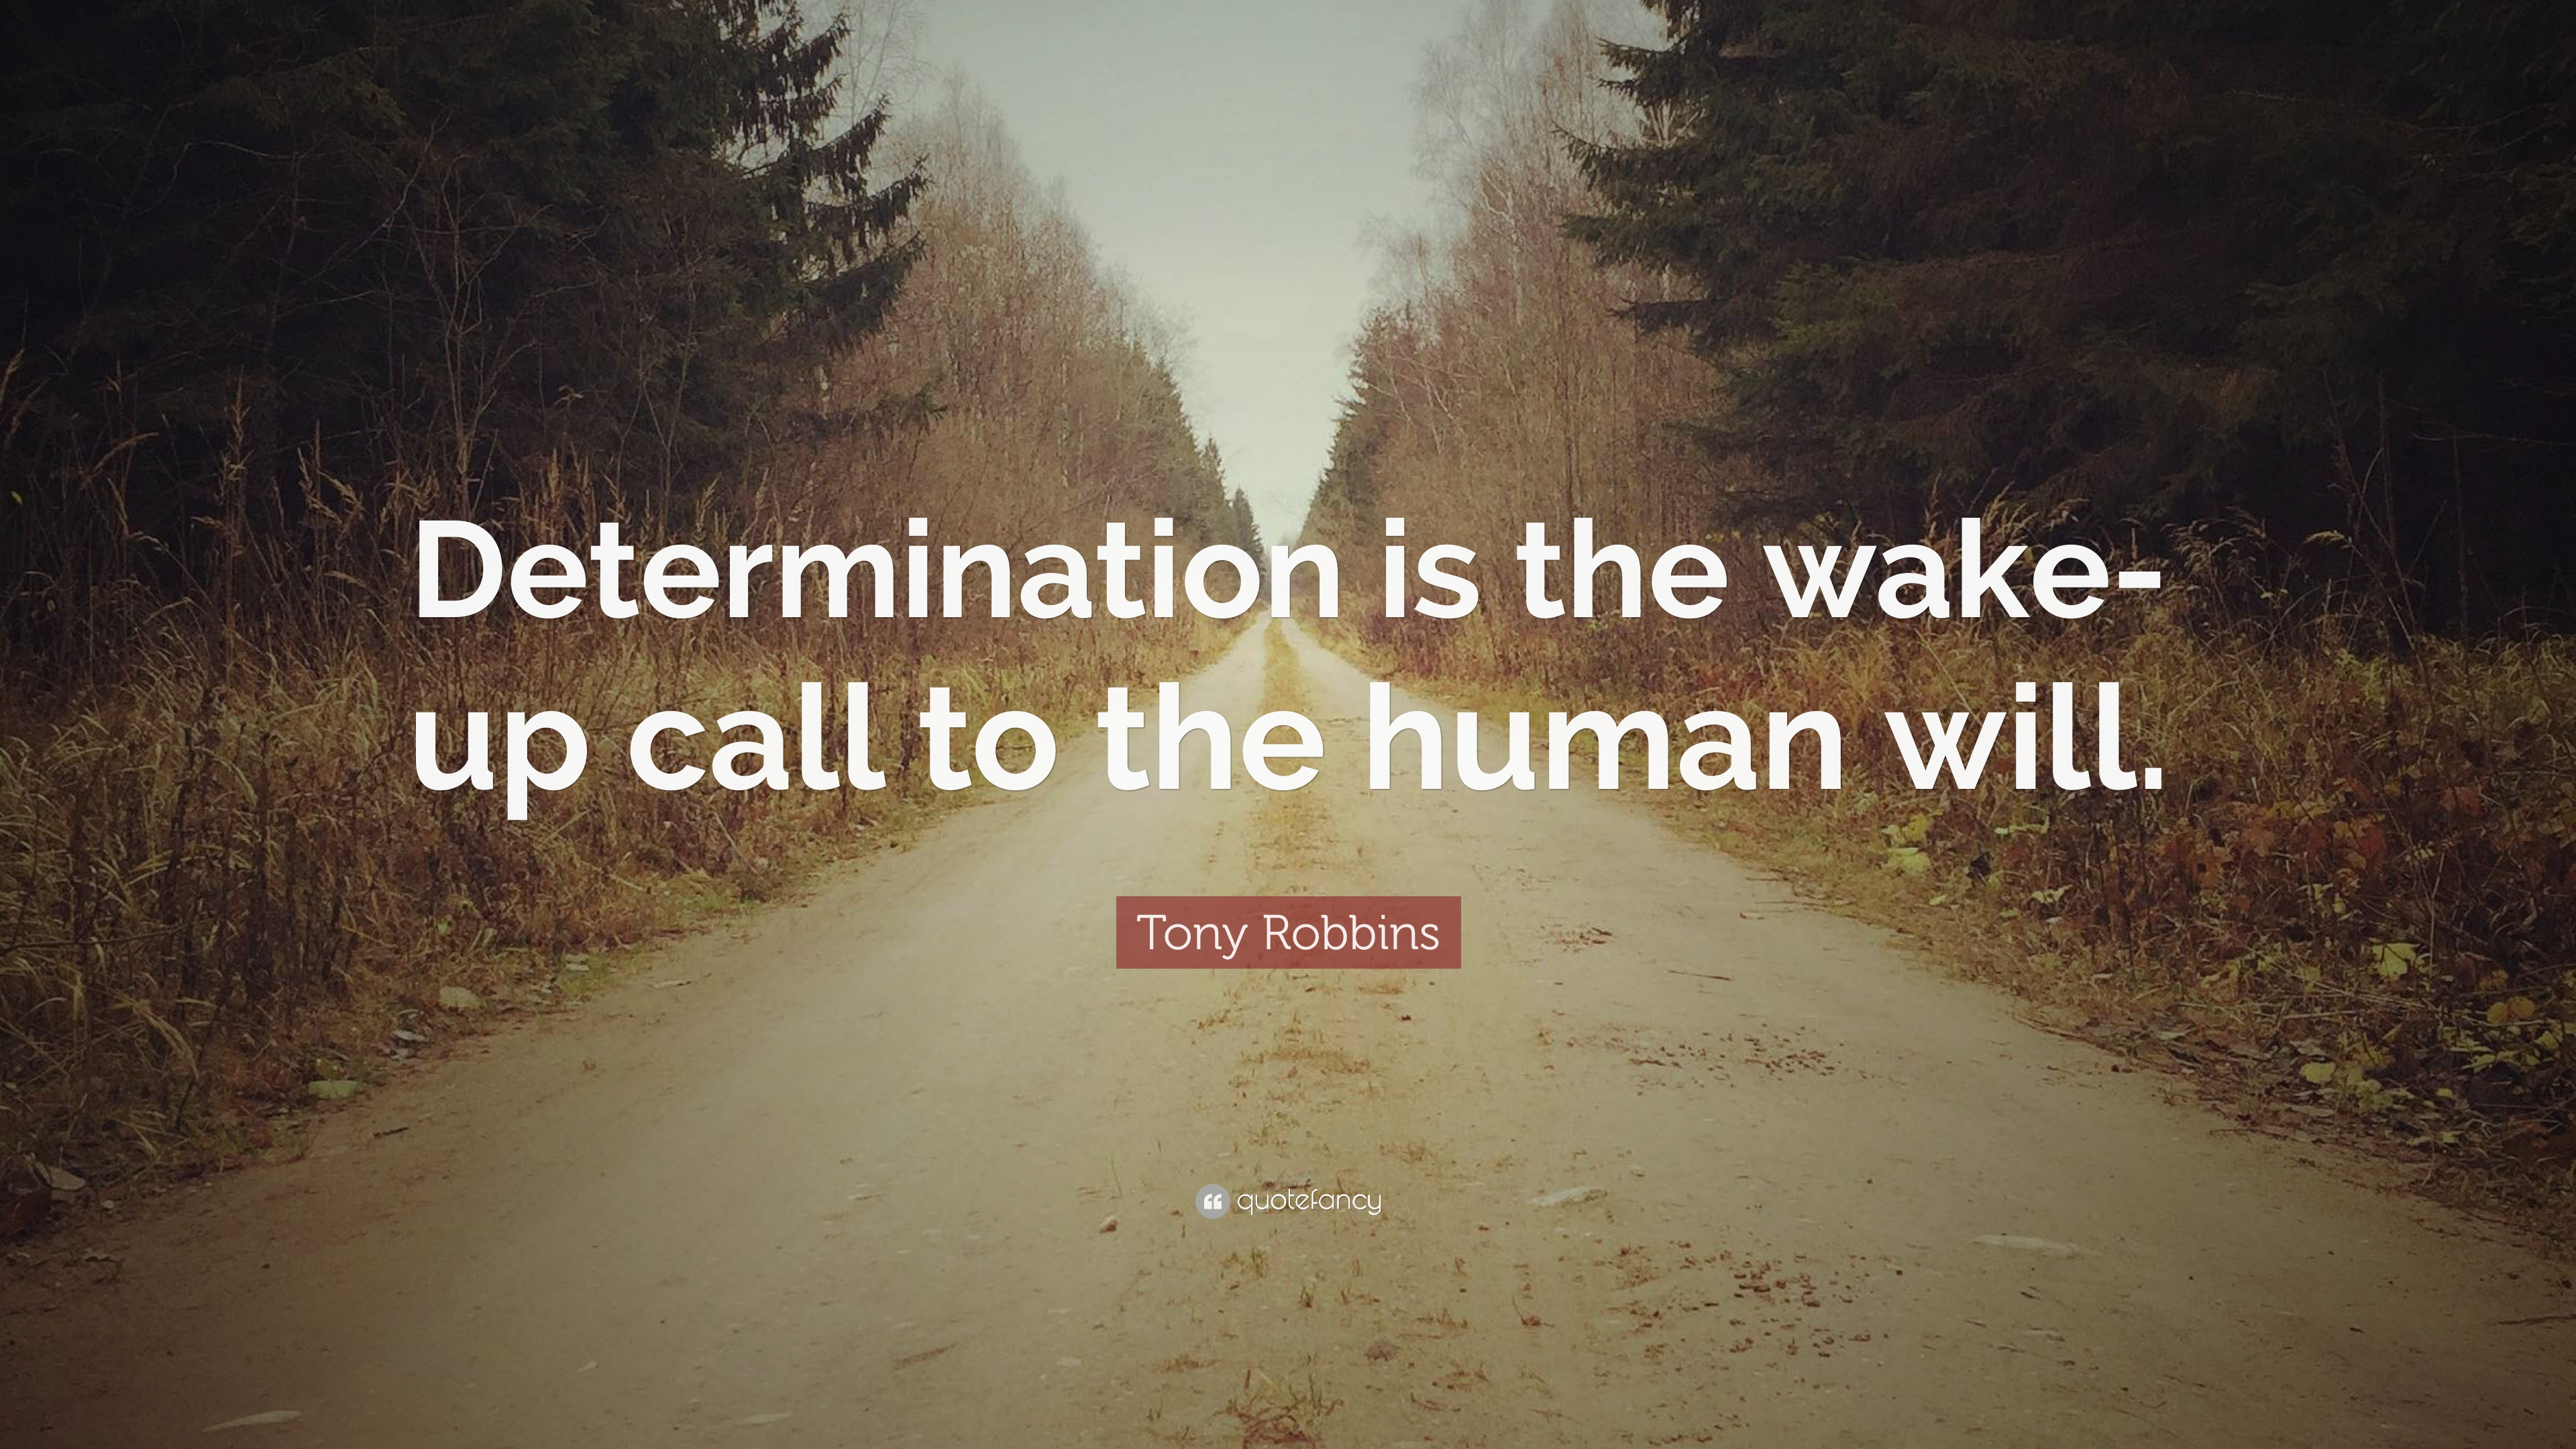 Tony Robbins Quote Determination Is The Wake Up Call To The Human